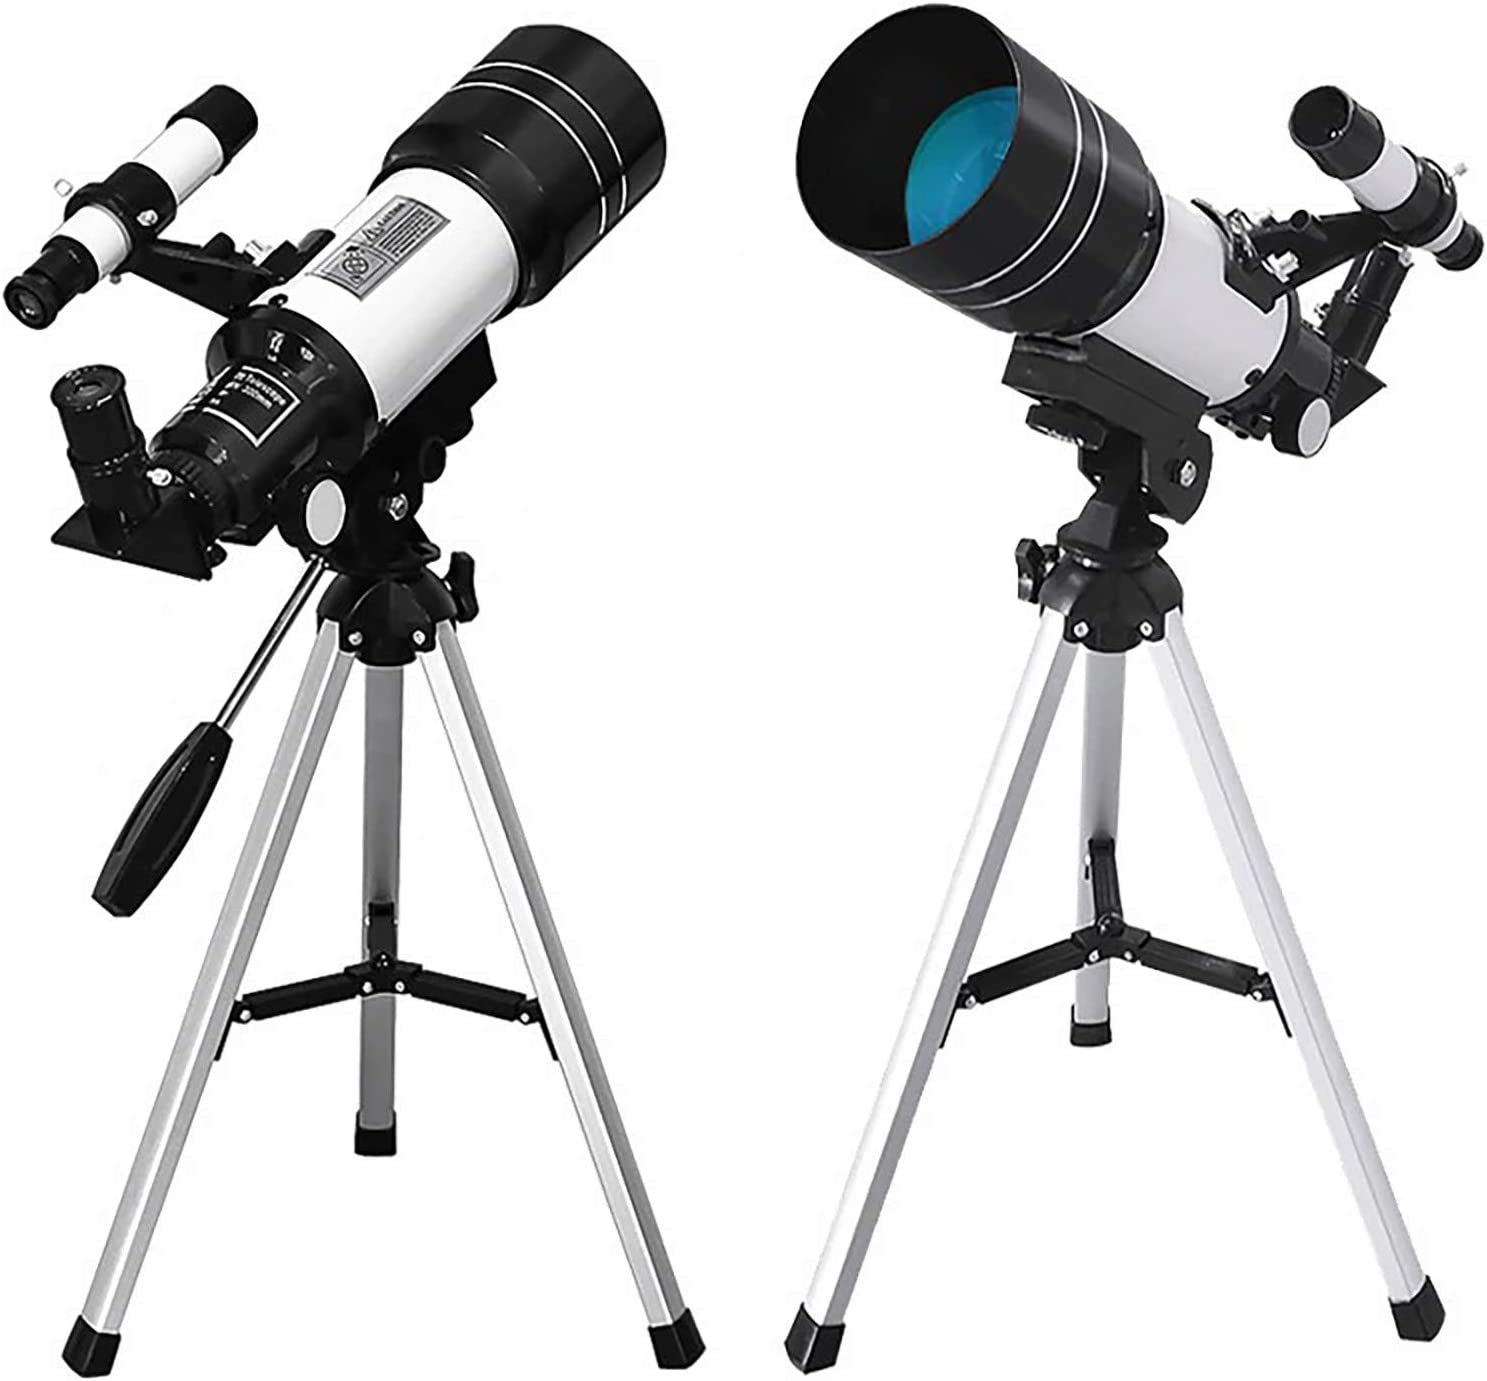 Telescope for Adults, 70mm Aperture Telescope with Tripod, Astronomical Refracting Telescope for Astronomy Beginners, Travel Telescope with 2 Magnification Eyepieces, Astronomy Gifts